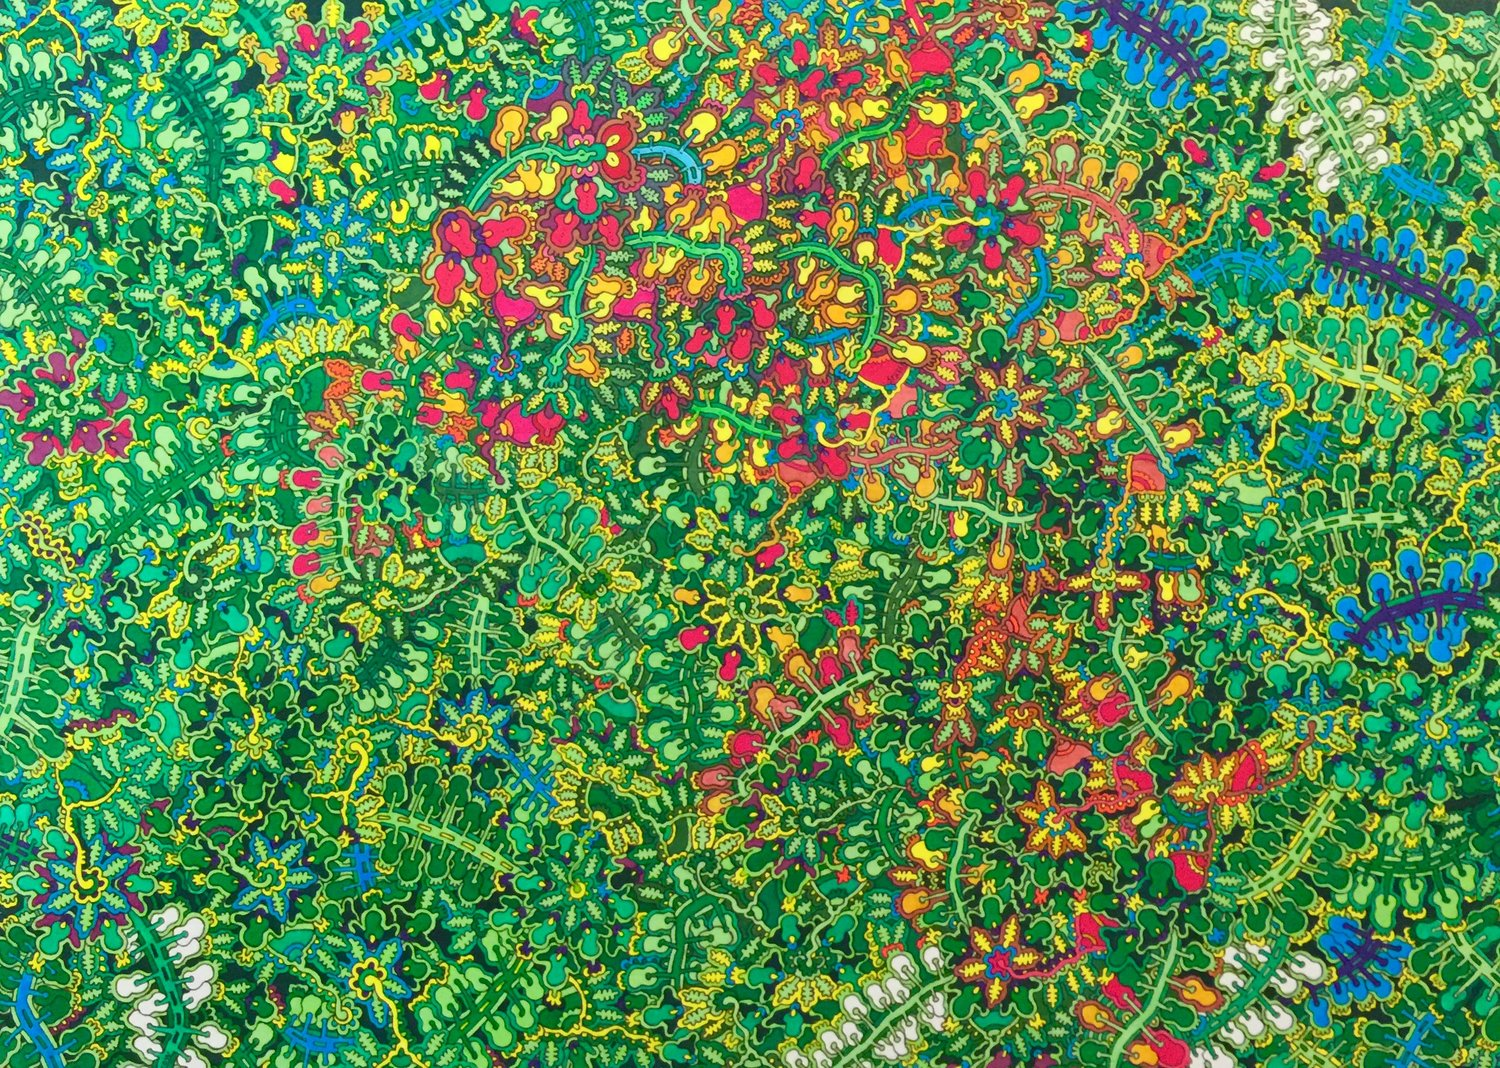 'Green', Max Goshko-Dankov, Oil and water based markers on paper, 30 x 40 cm